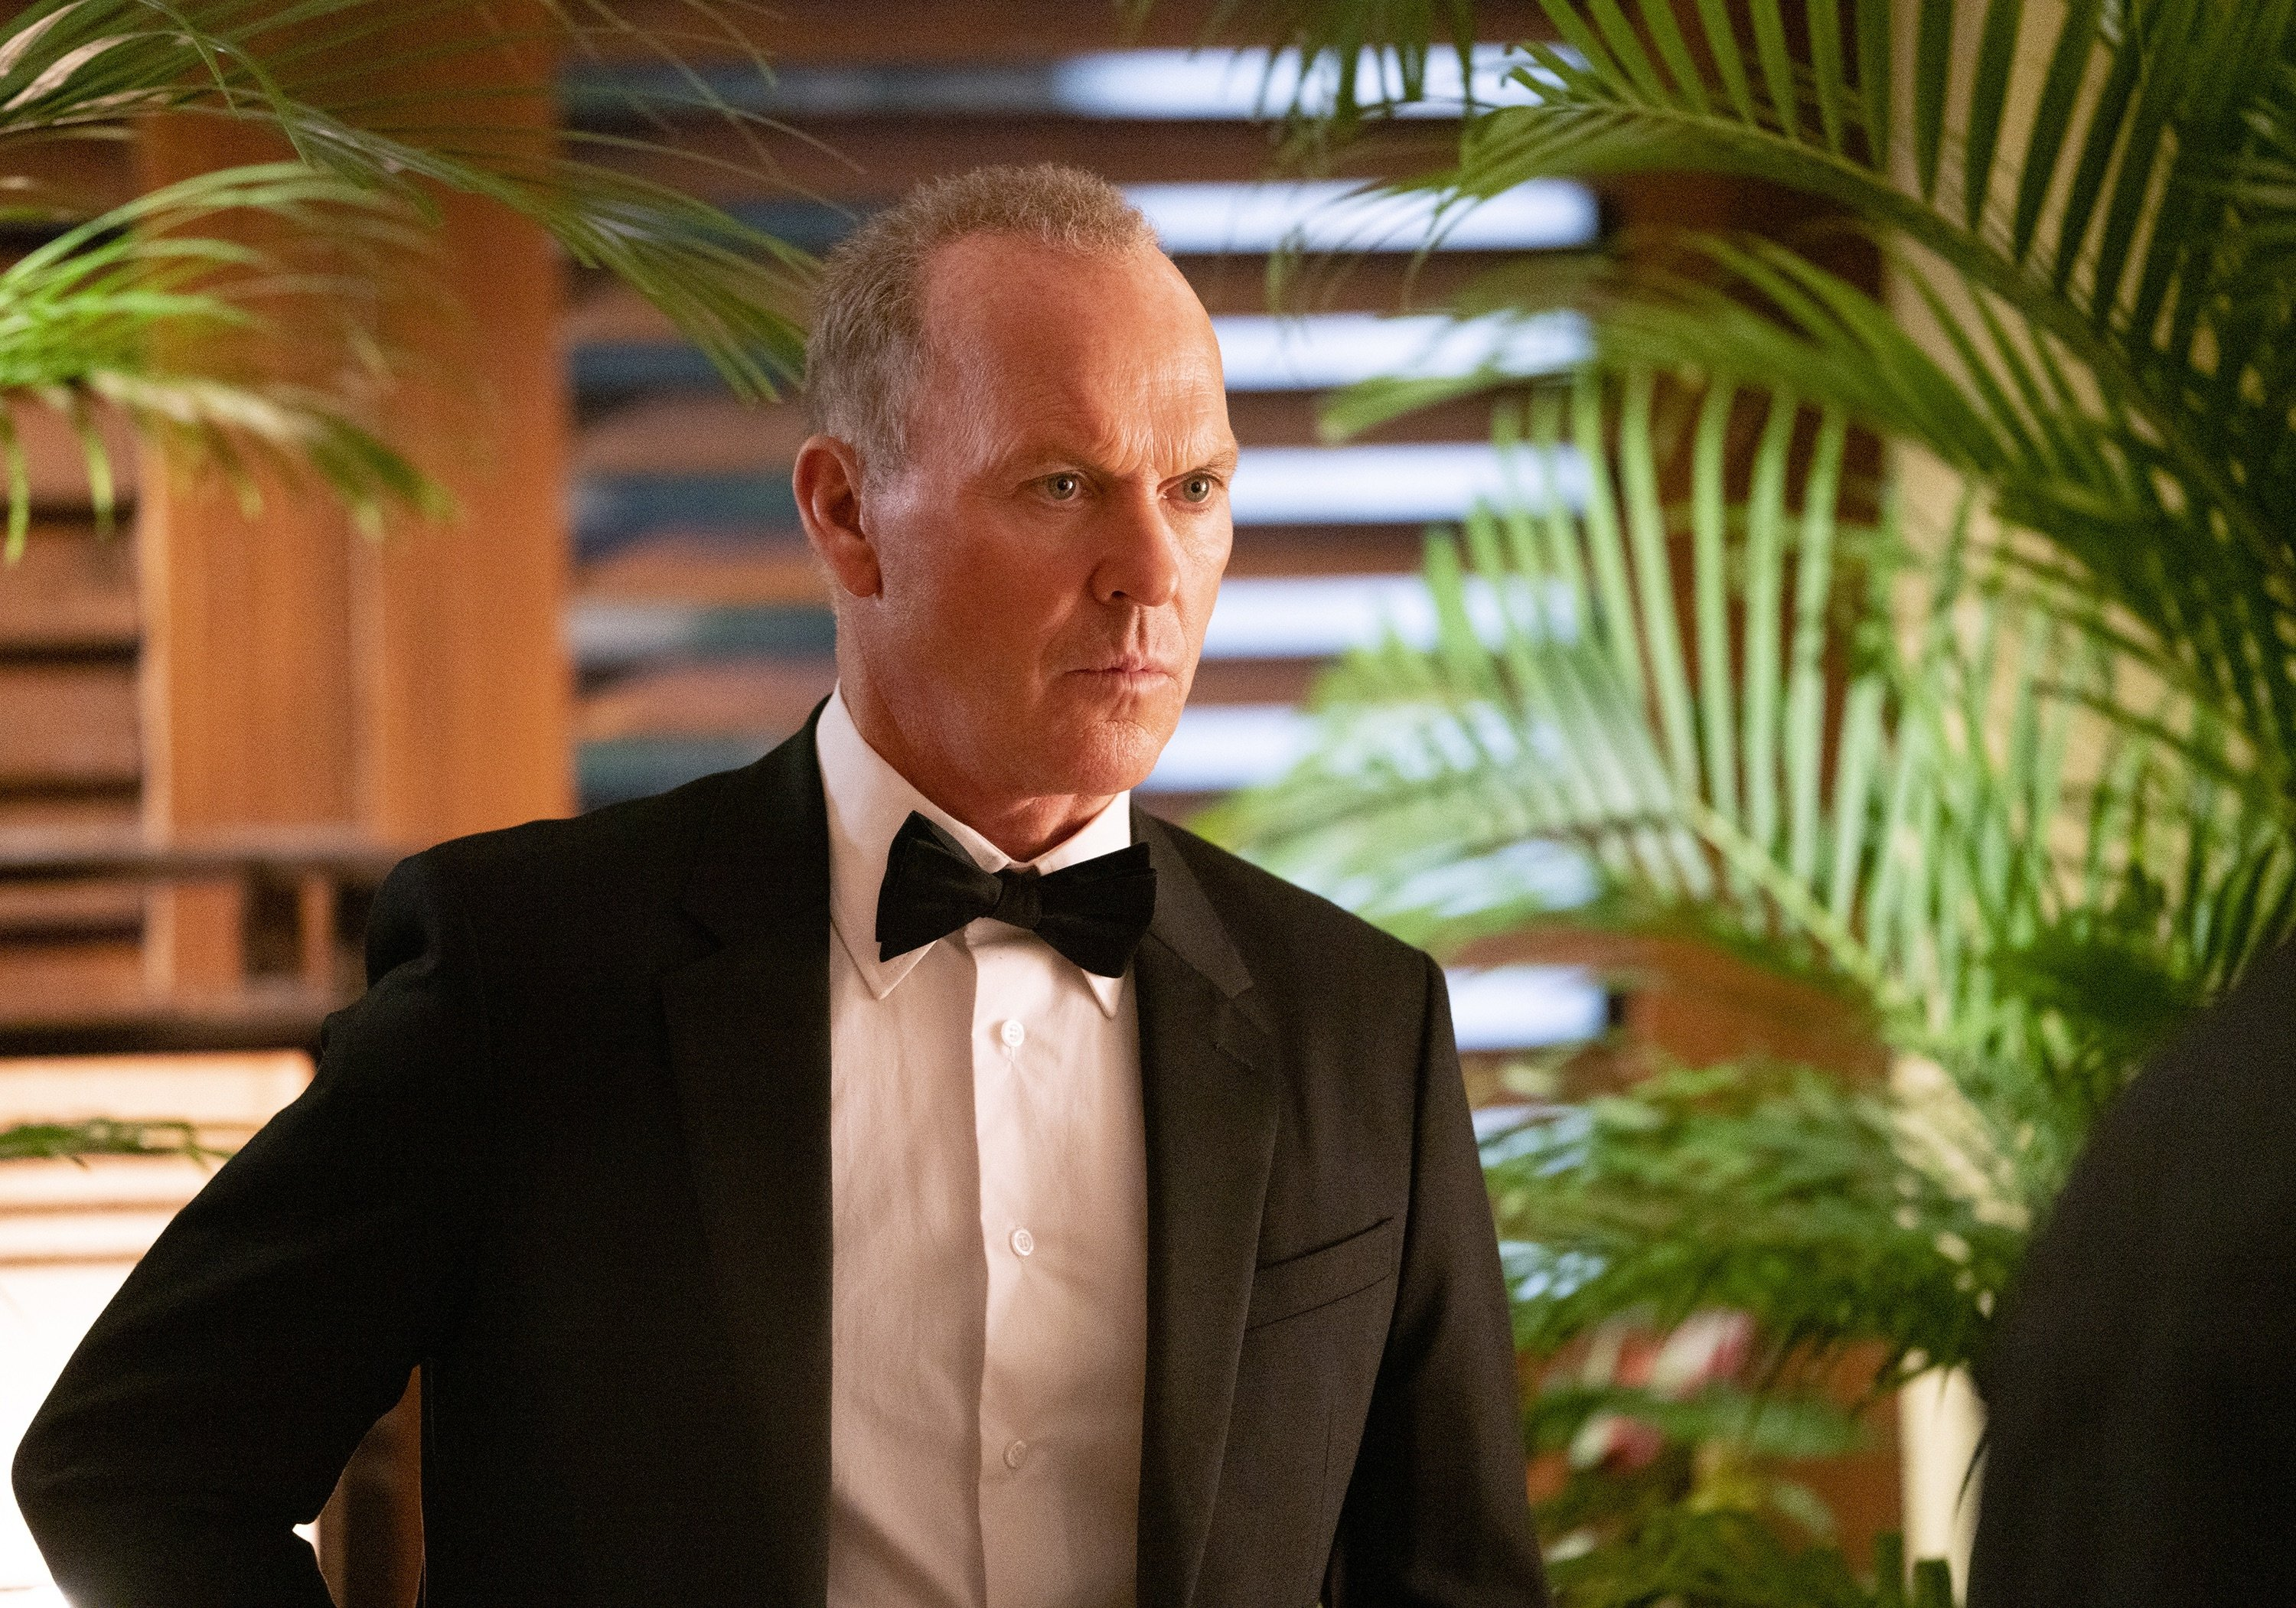 """Michael Keaton as Rembrandt,in a scene from the film """"The Protege."""" (Lionsgate via AP)"""